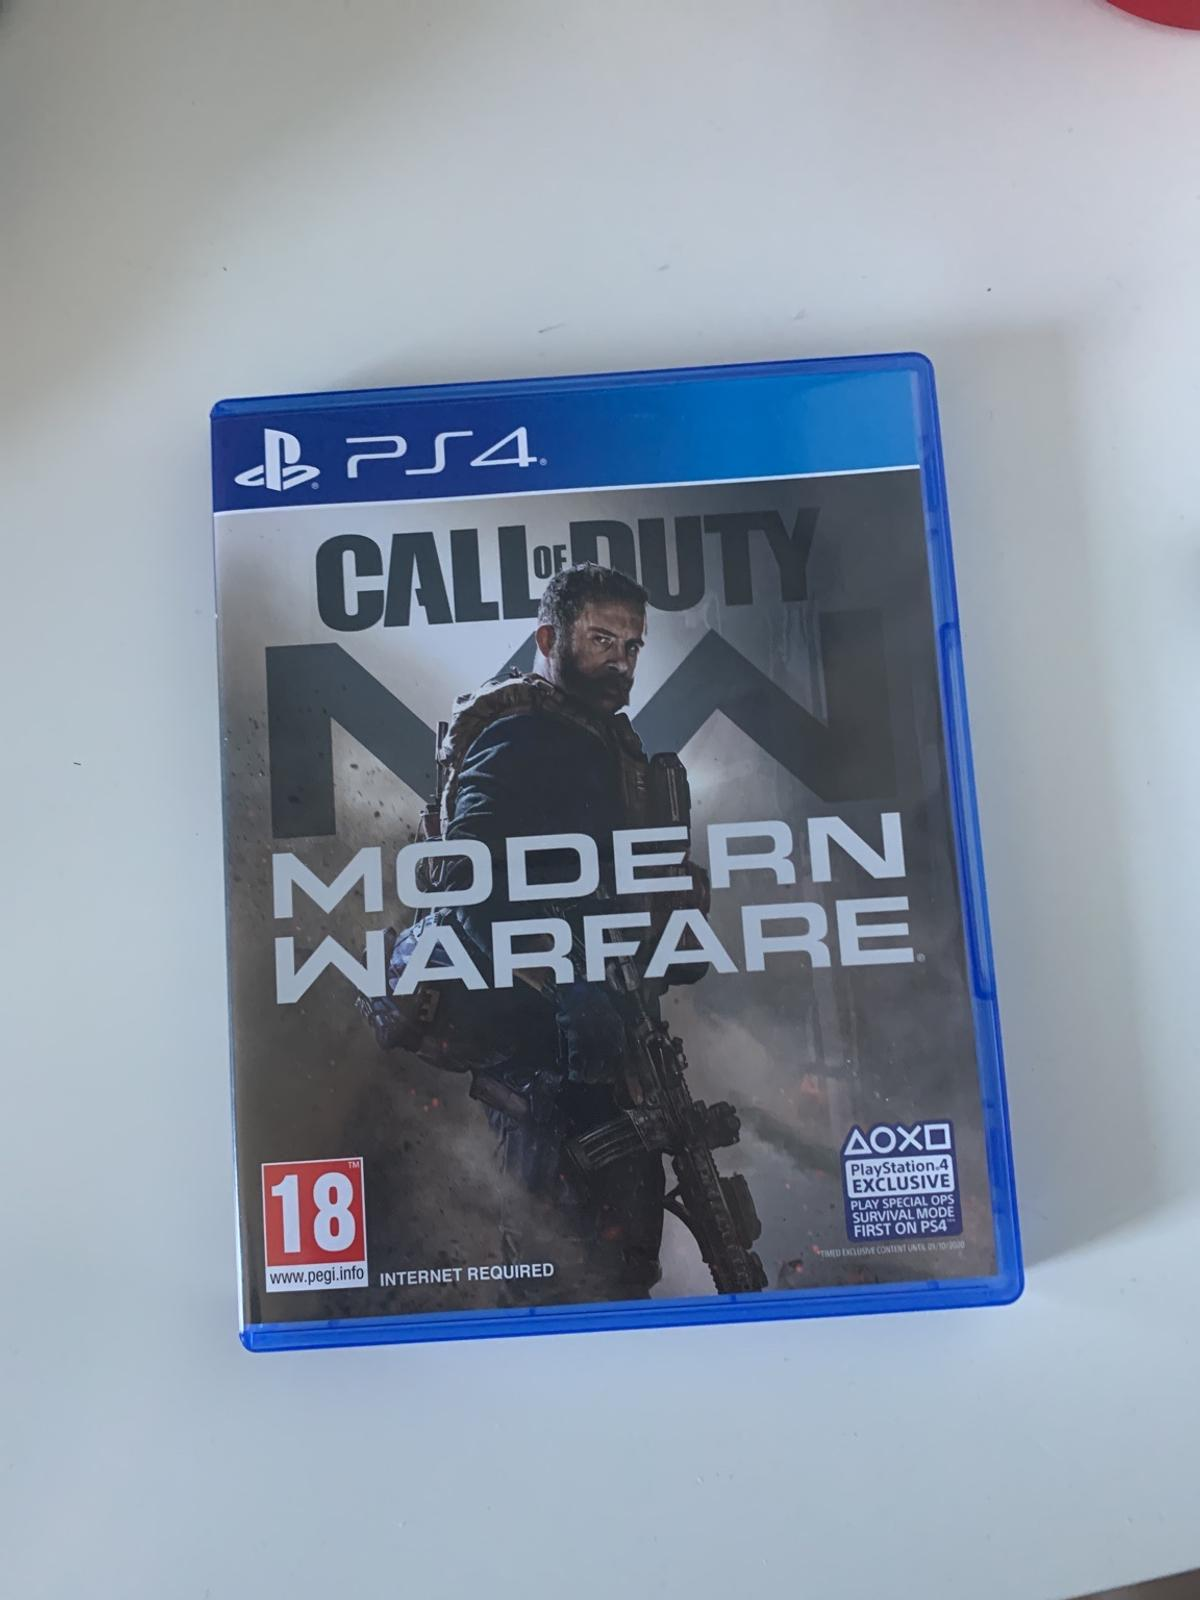 Very good condition, PS4 game, Call of Duty Modern Warfare.